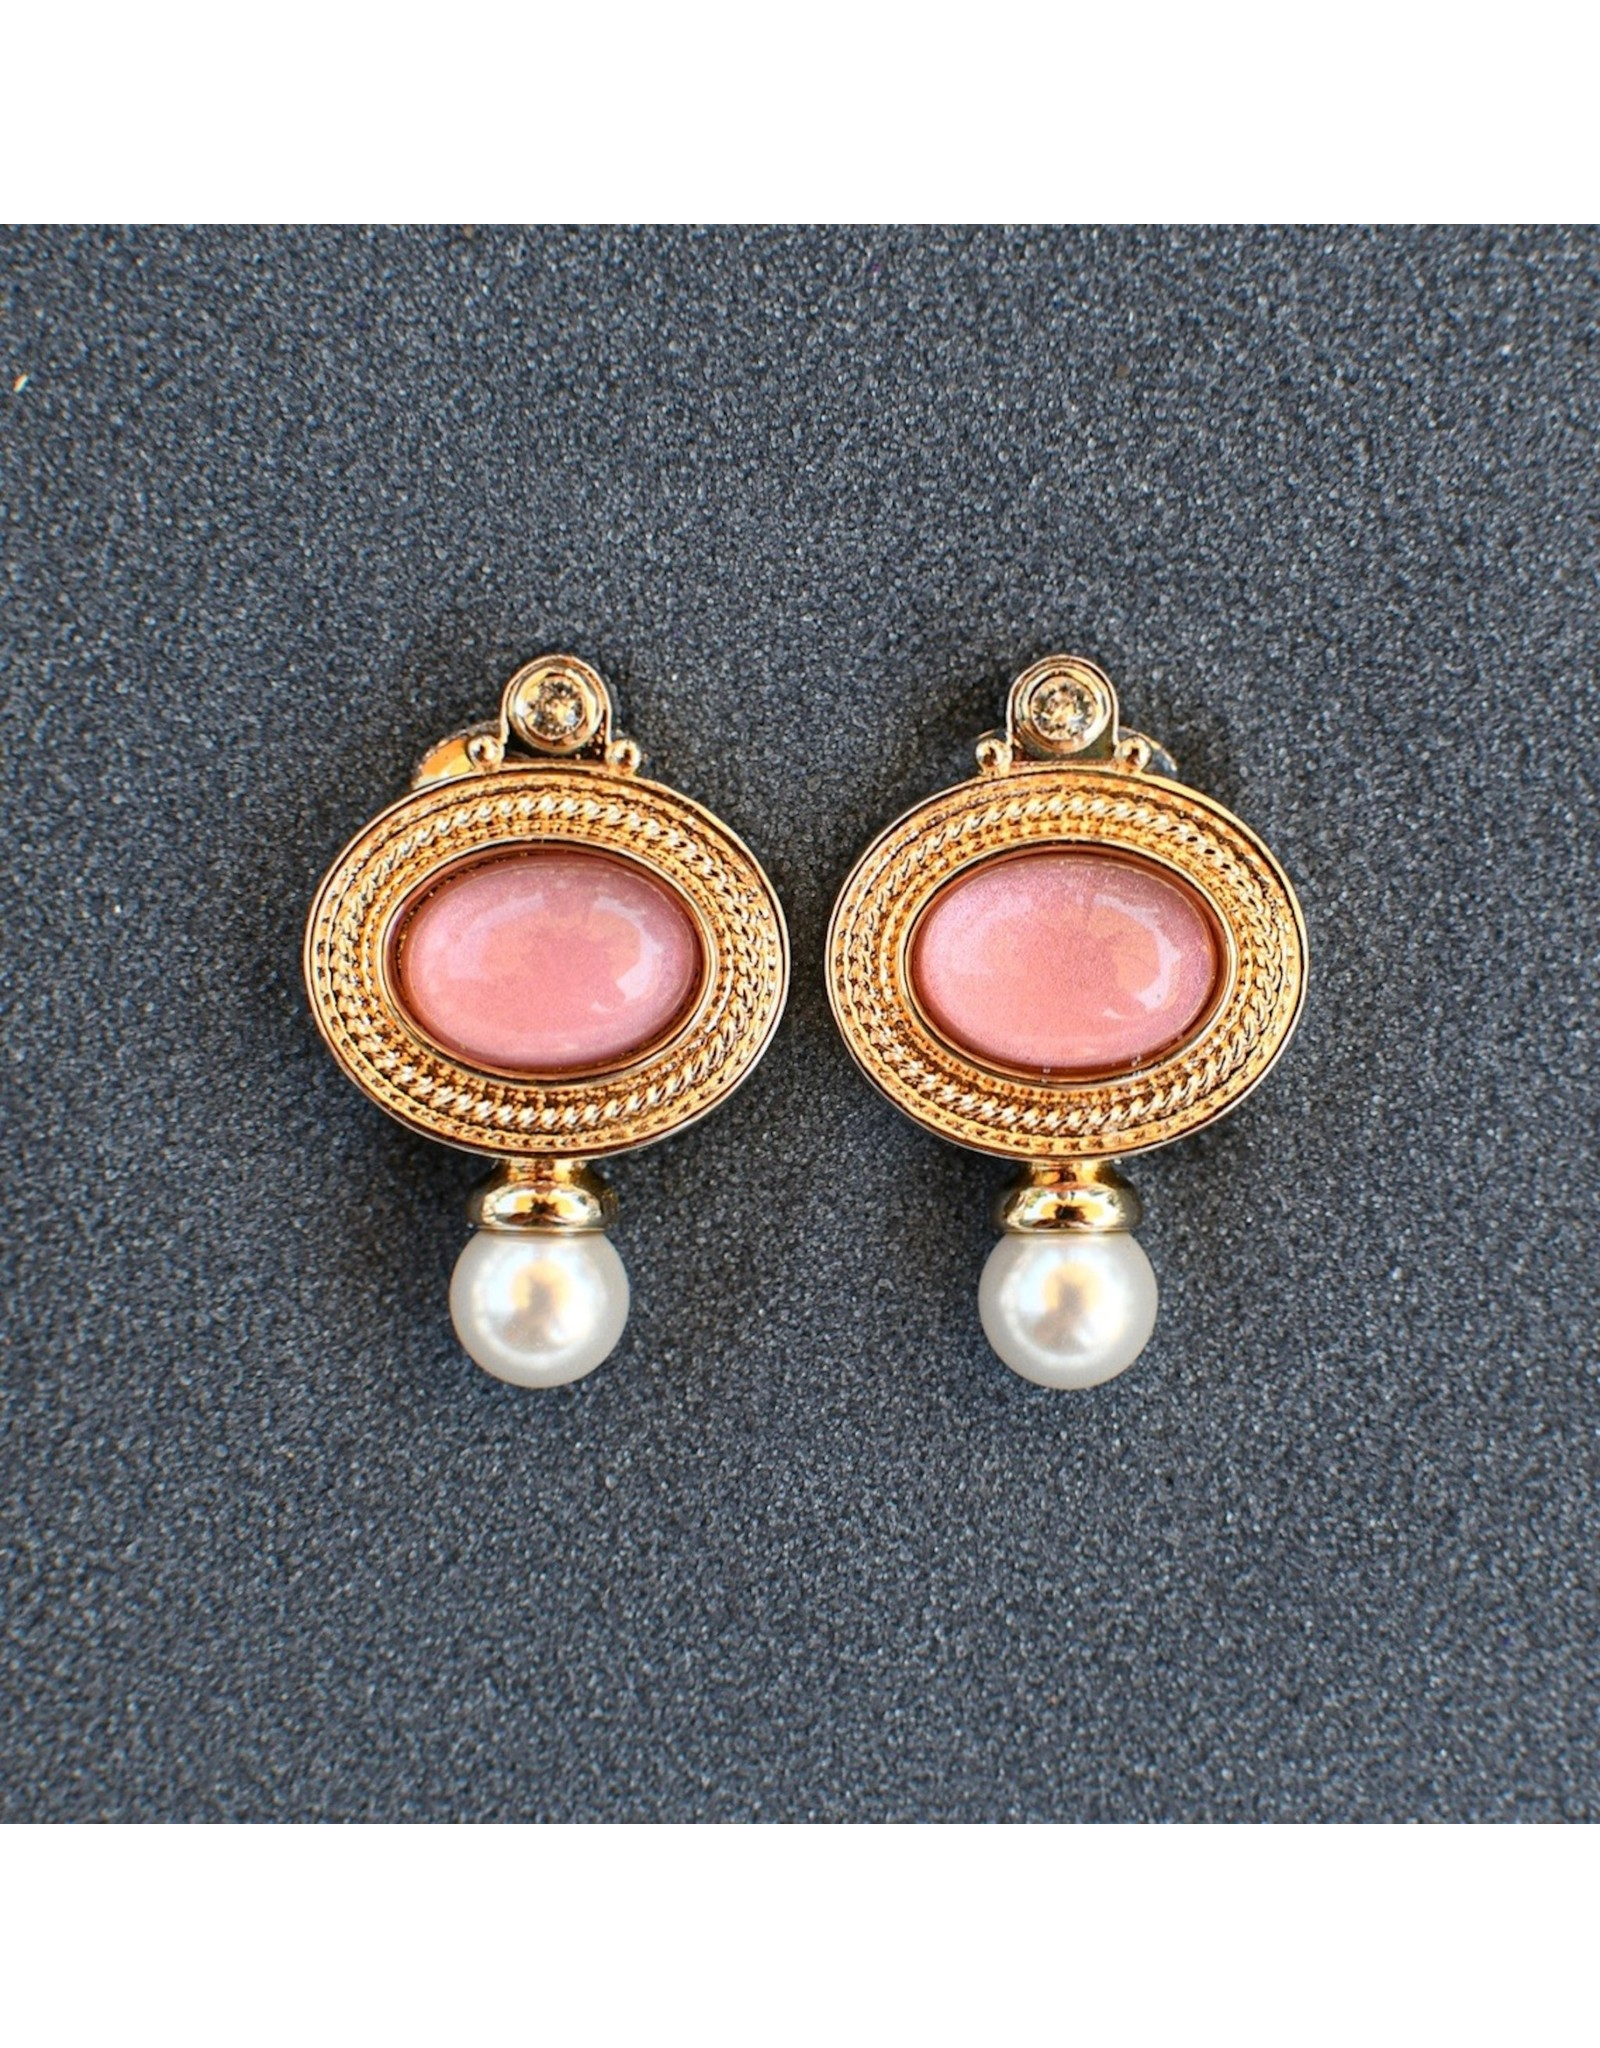 VC Italy rep/rje/1778/pink/gld/perl 01+r25+08+75cab